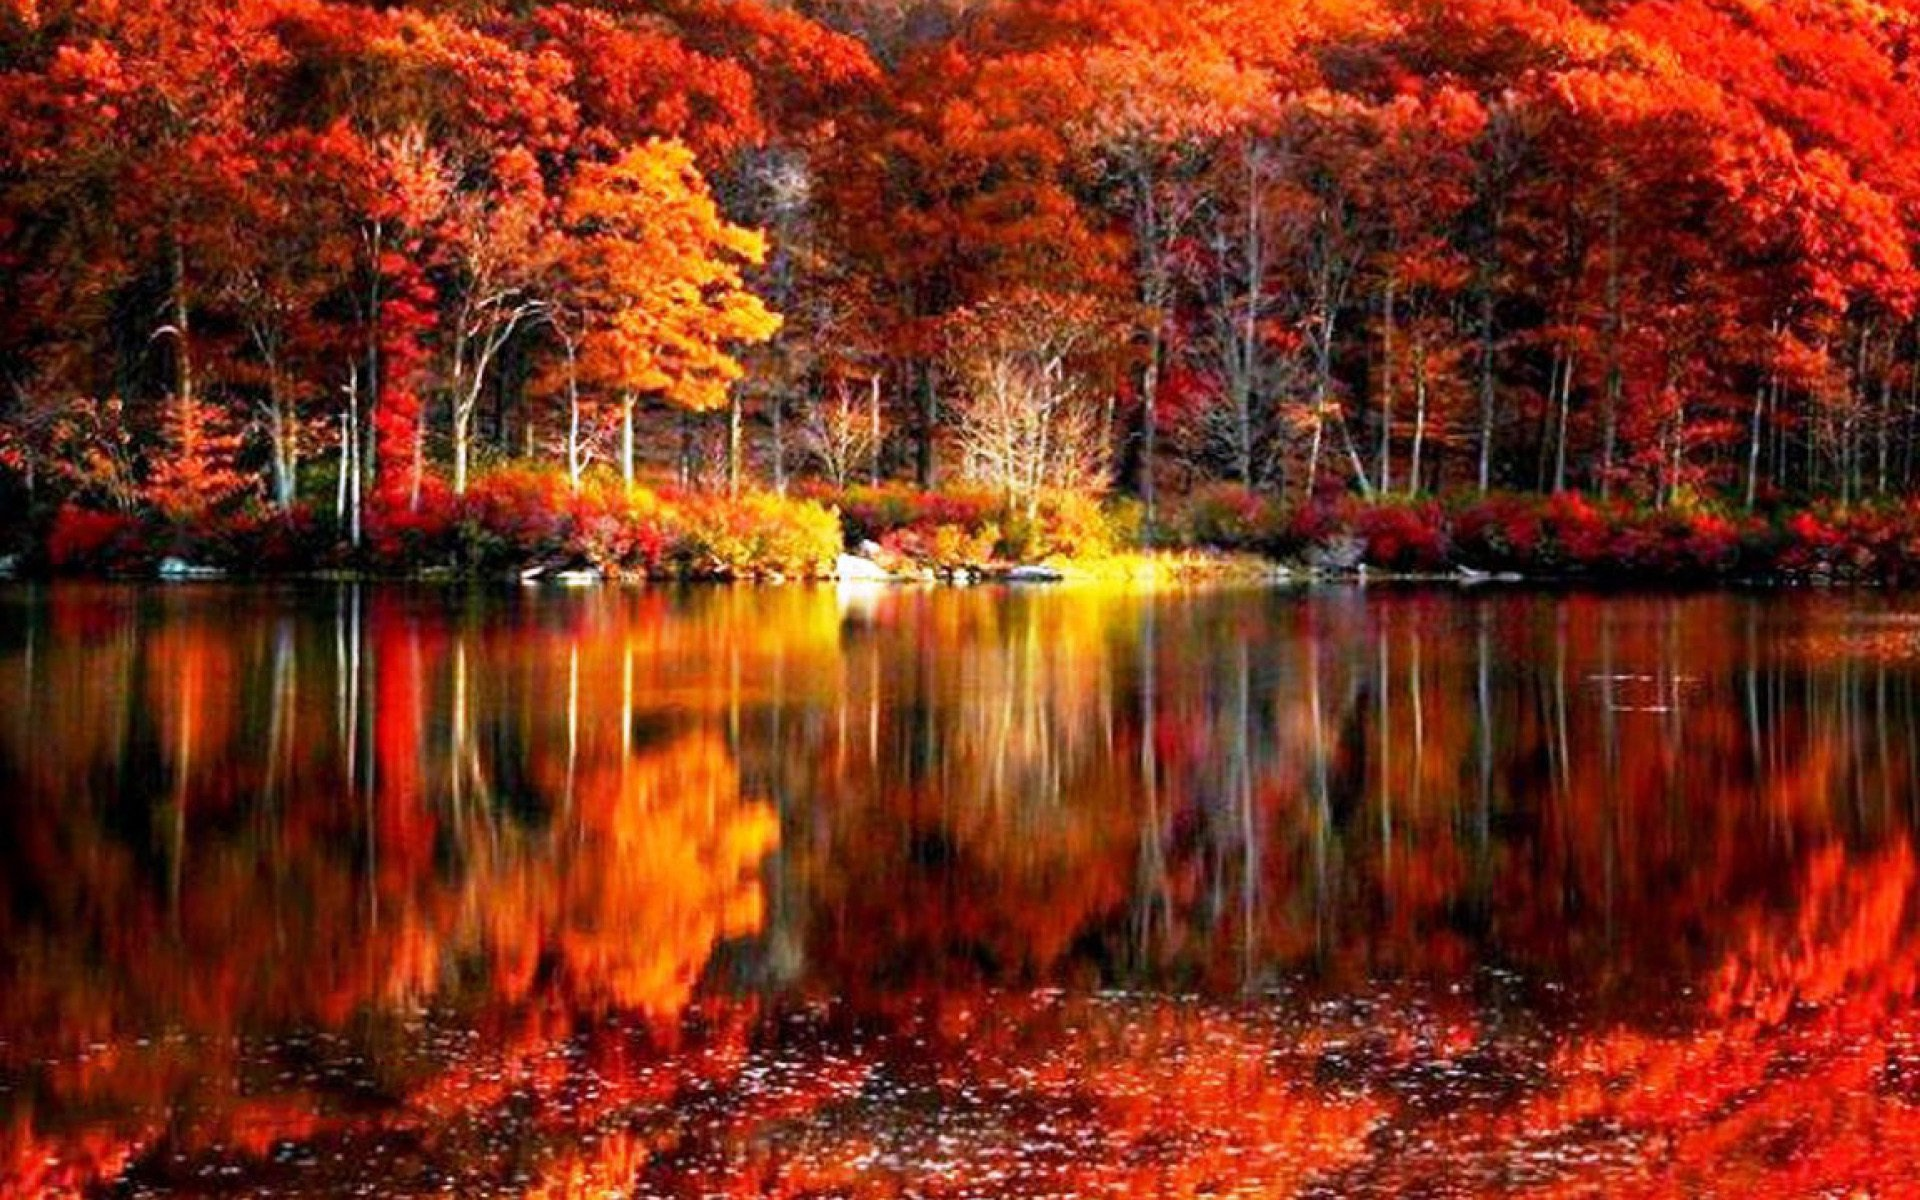 Autumn Lakes Fall Scenery Wallpaper